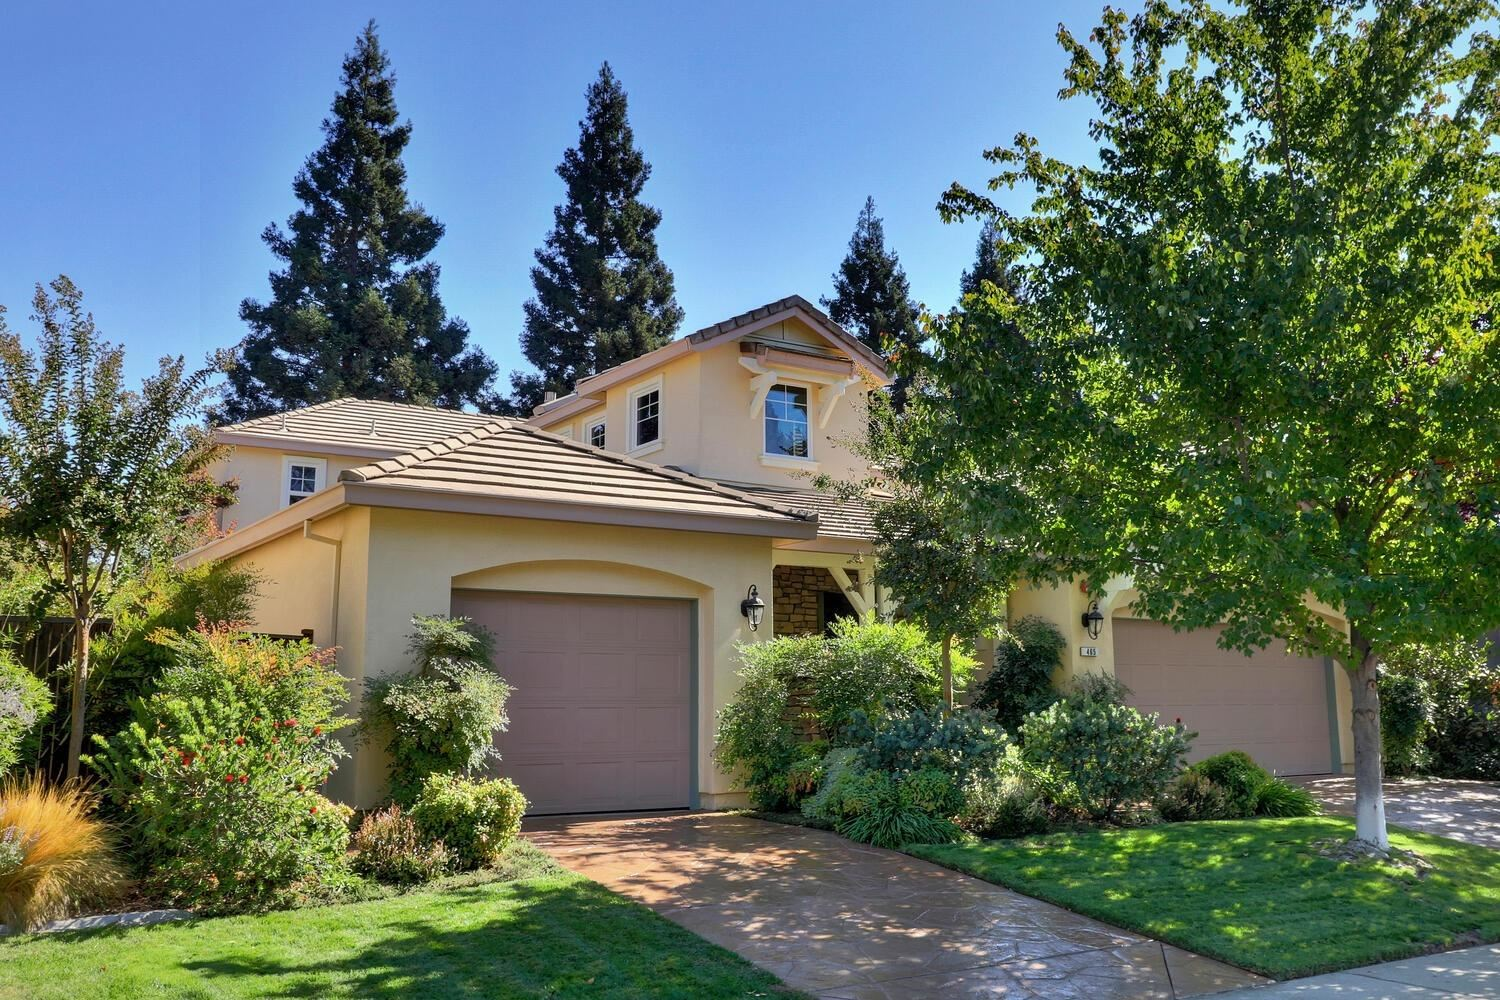 Photo of 465 Westlake Drive, West Sacramento, CA 95605 (MLS # 20062458)